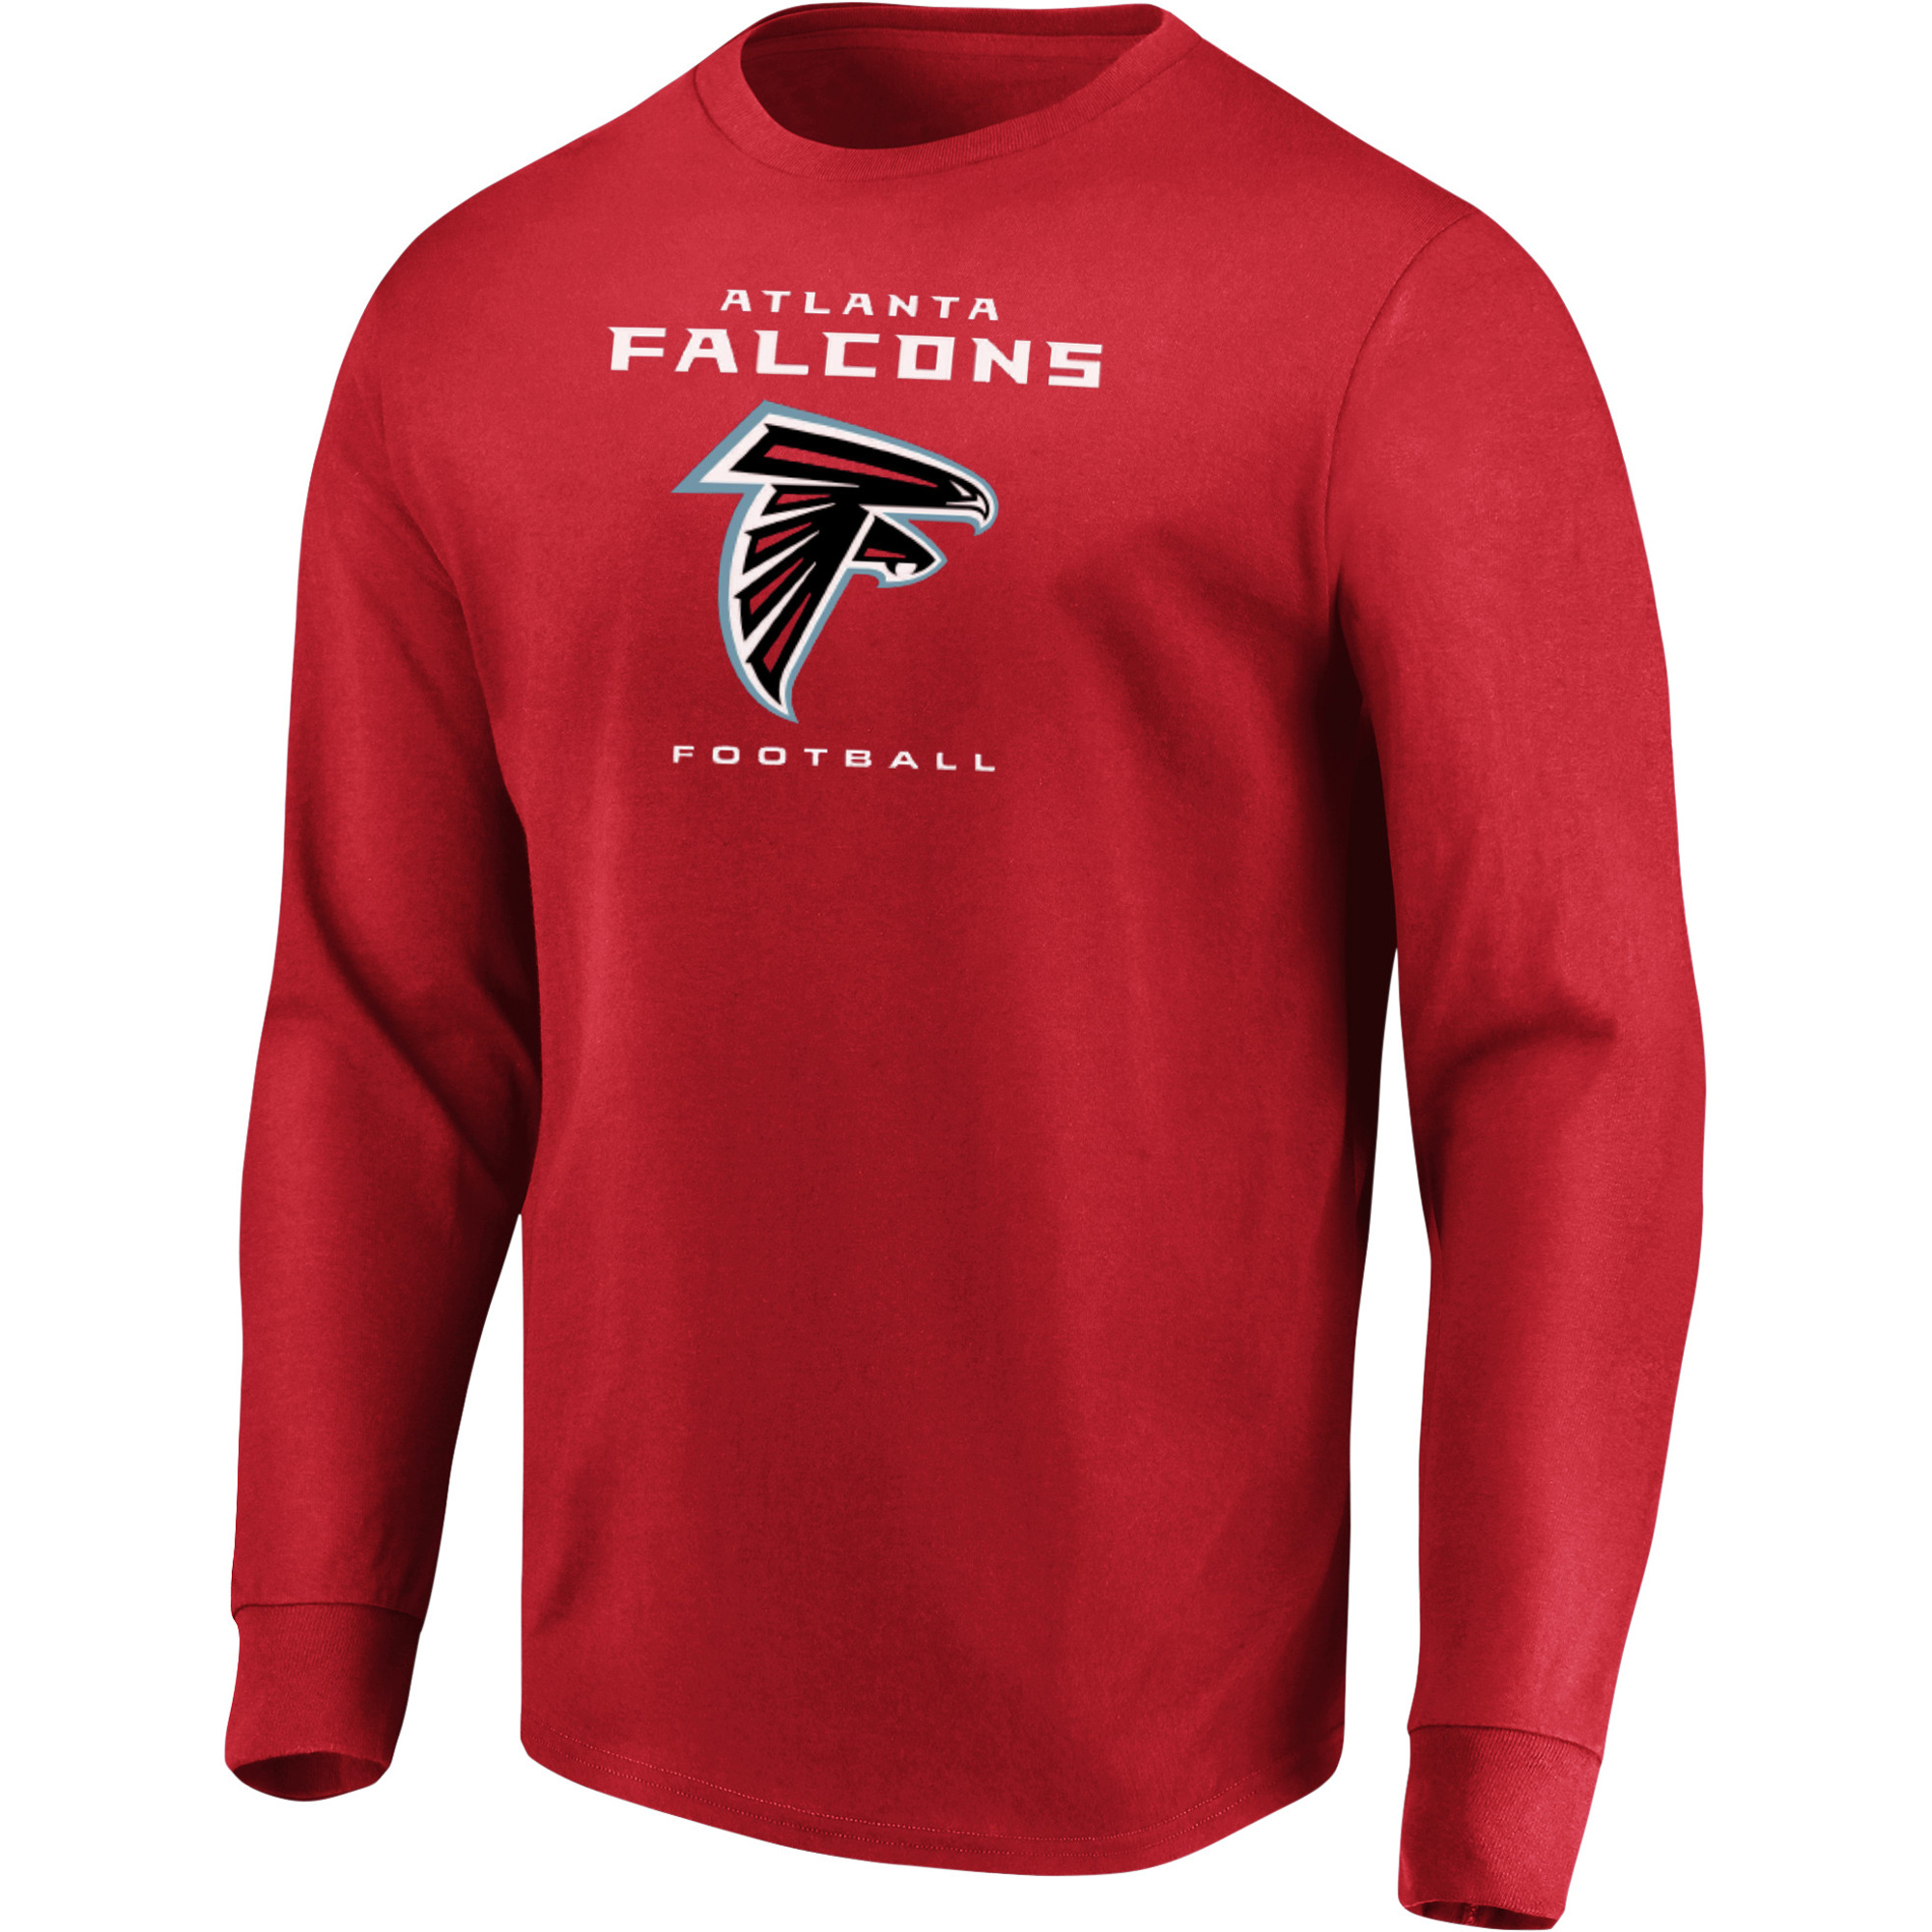 Men's Majestic Red Atlanta Falcons Our Team Long Sleeve T-Shirt